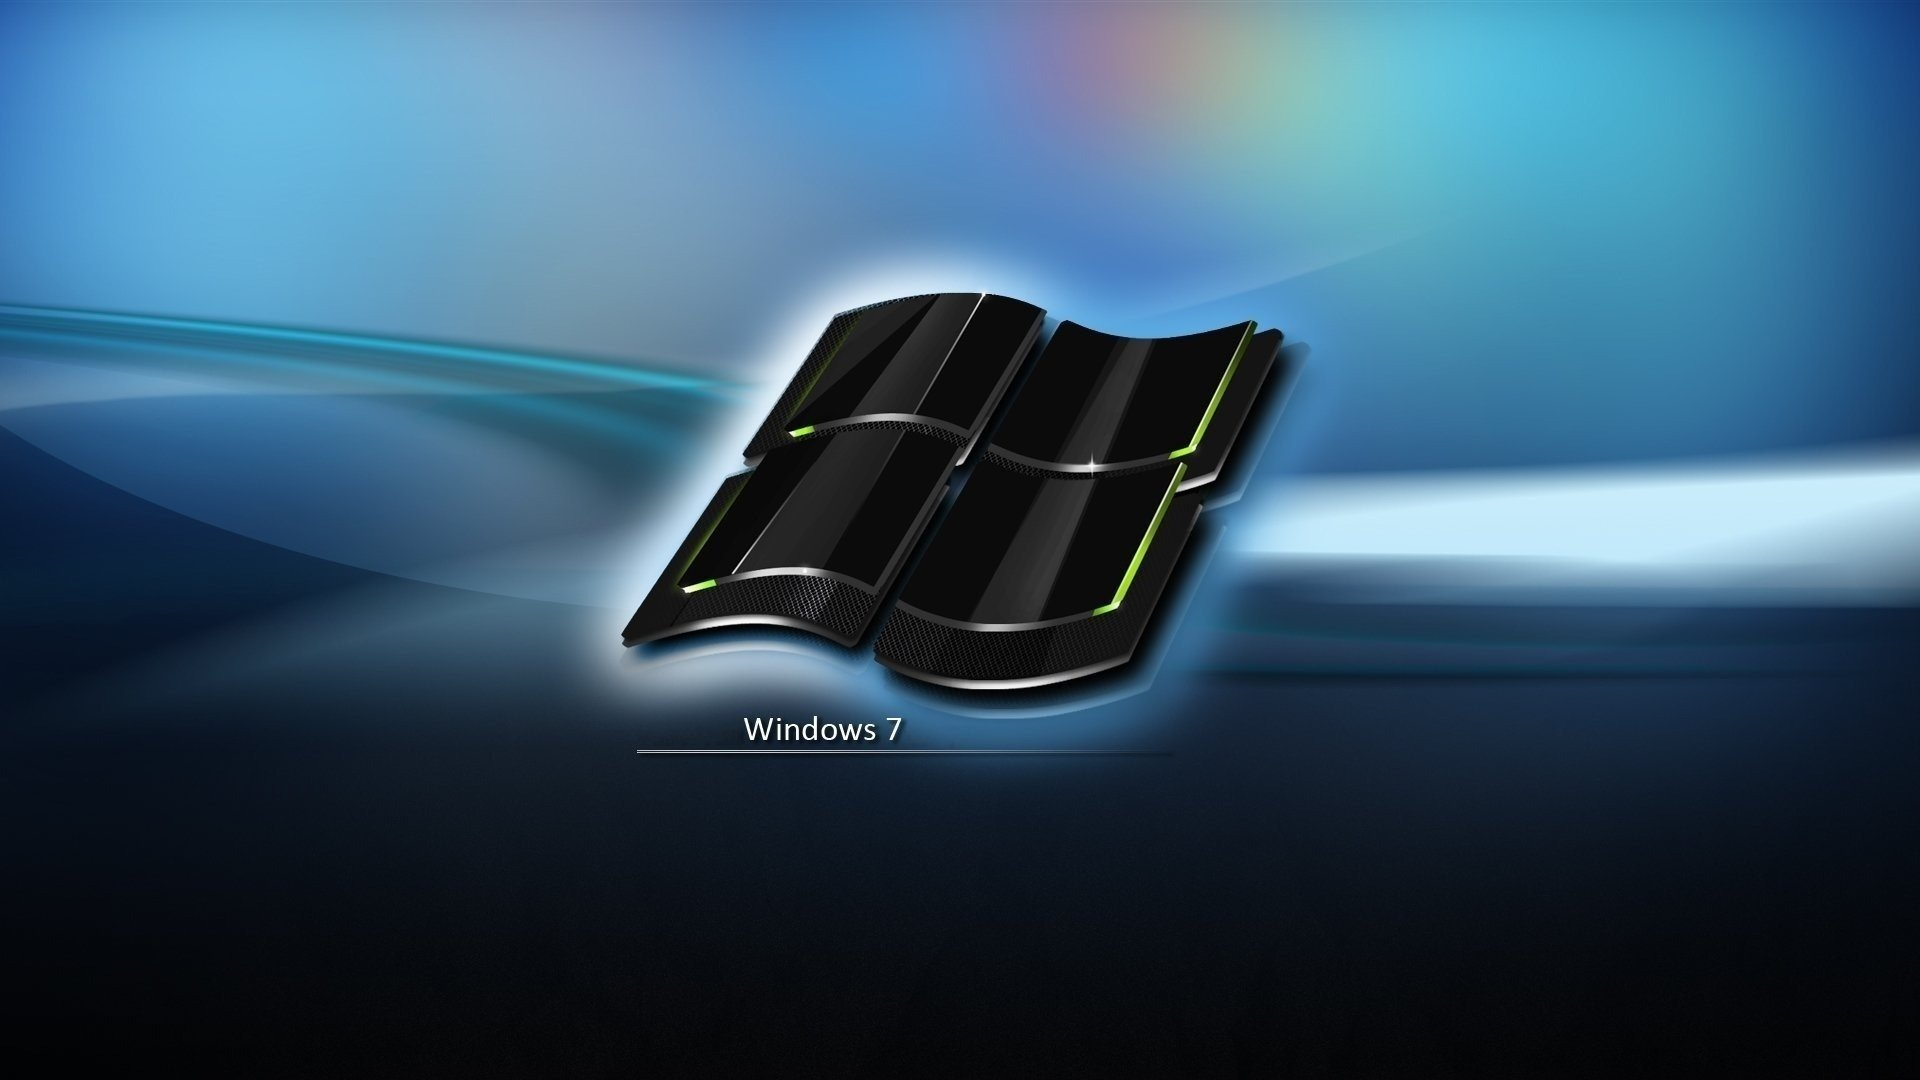 Technology - Windows 7  Wallpaper